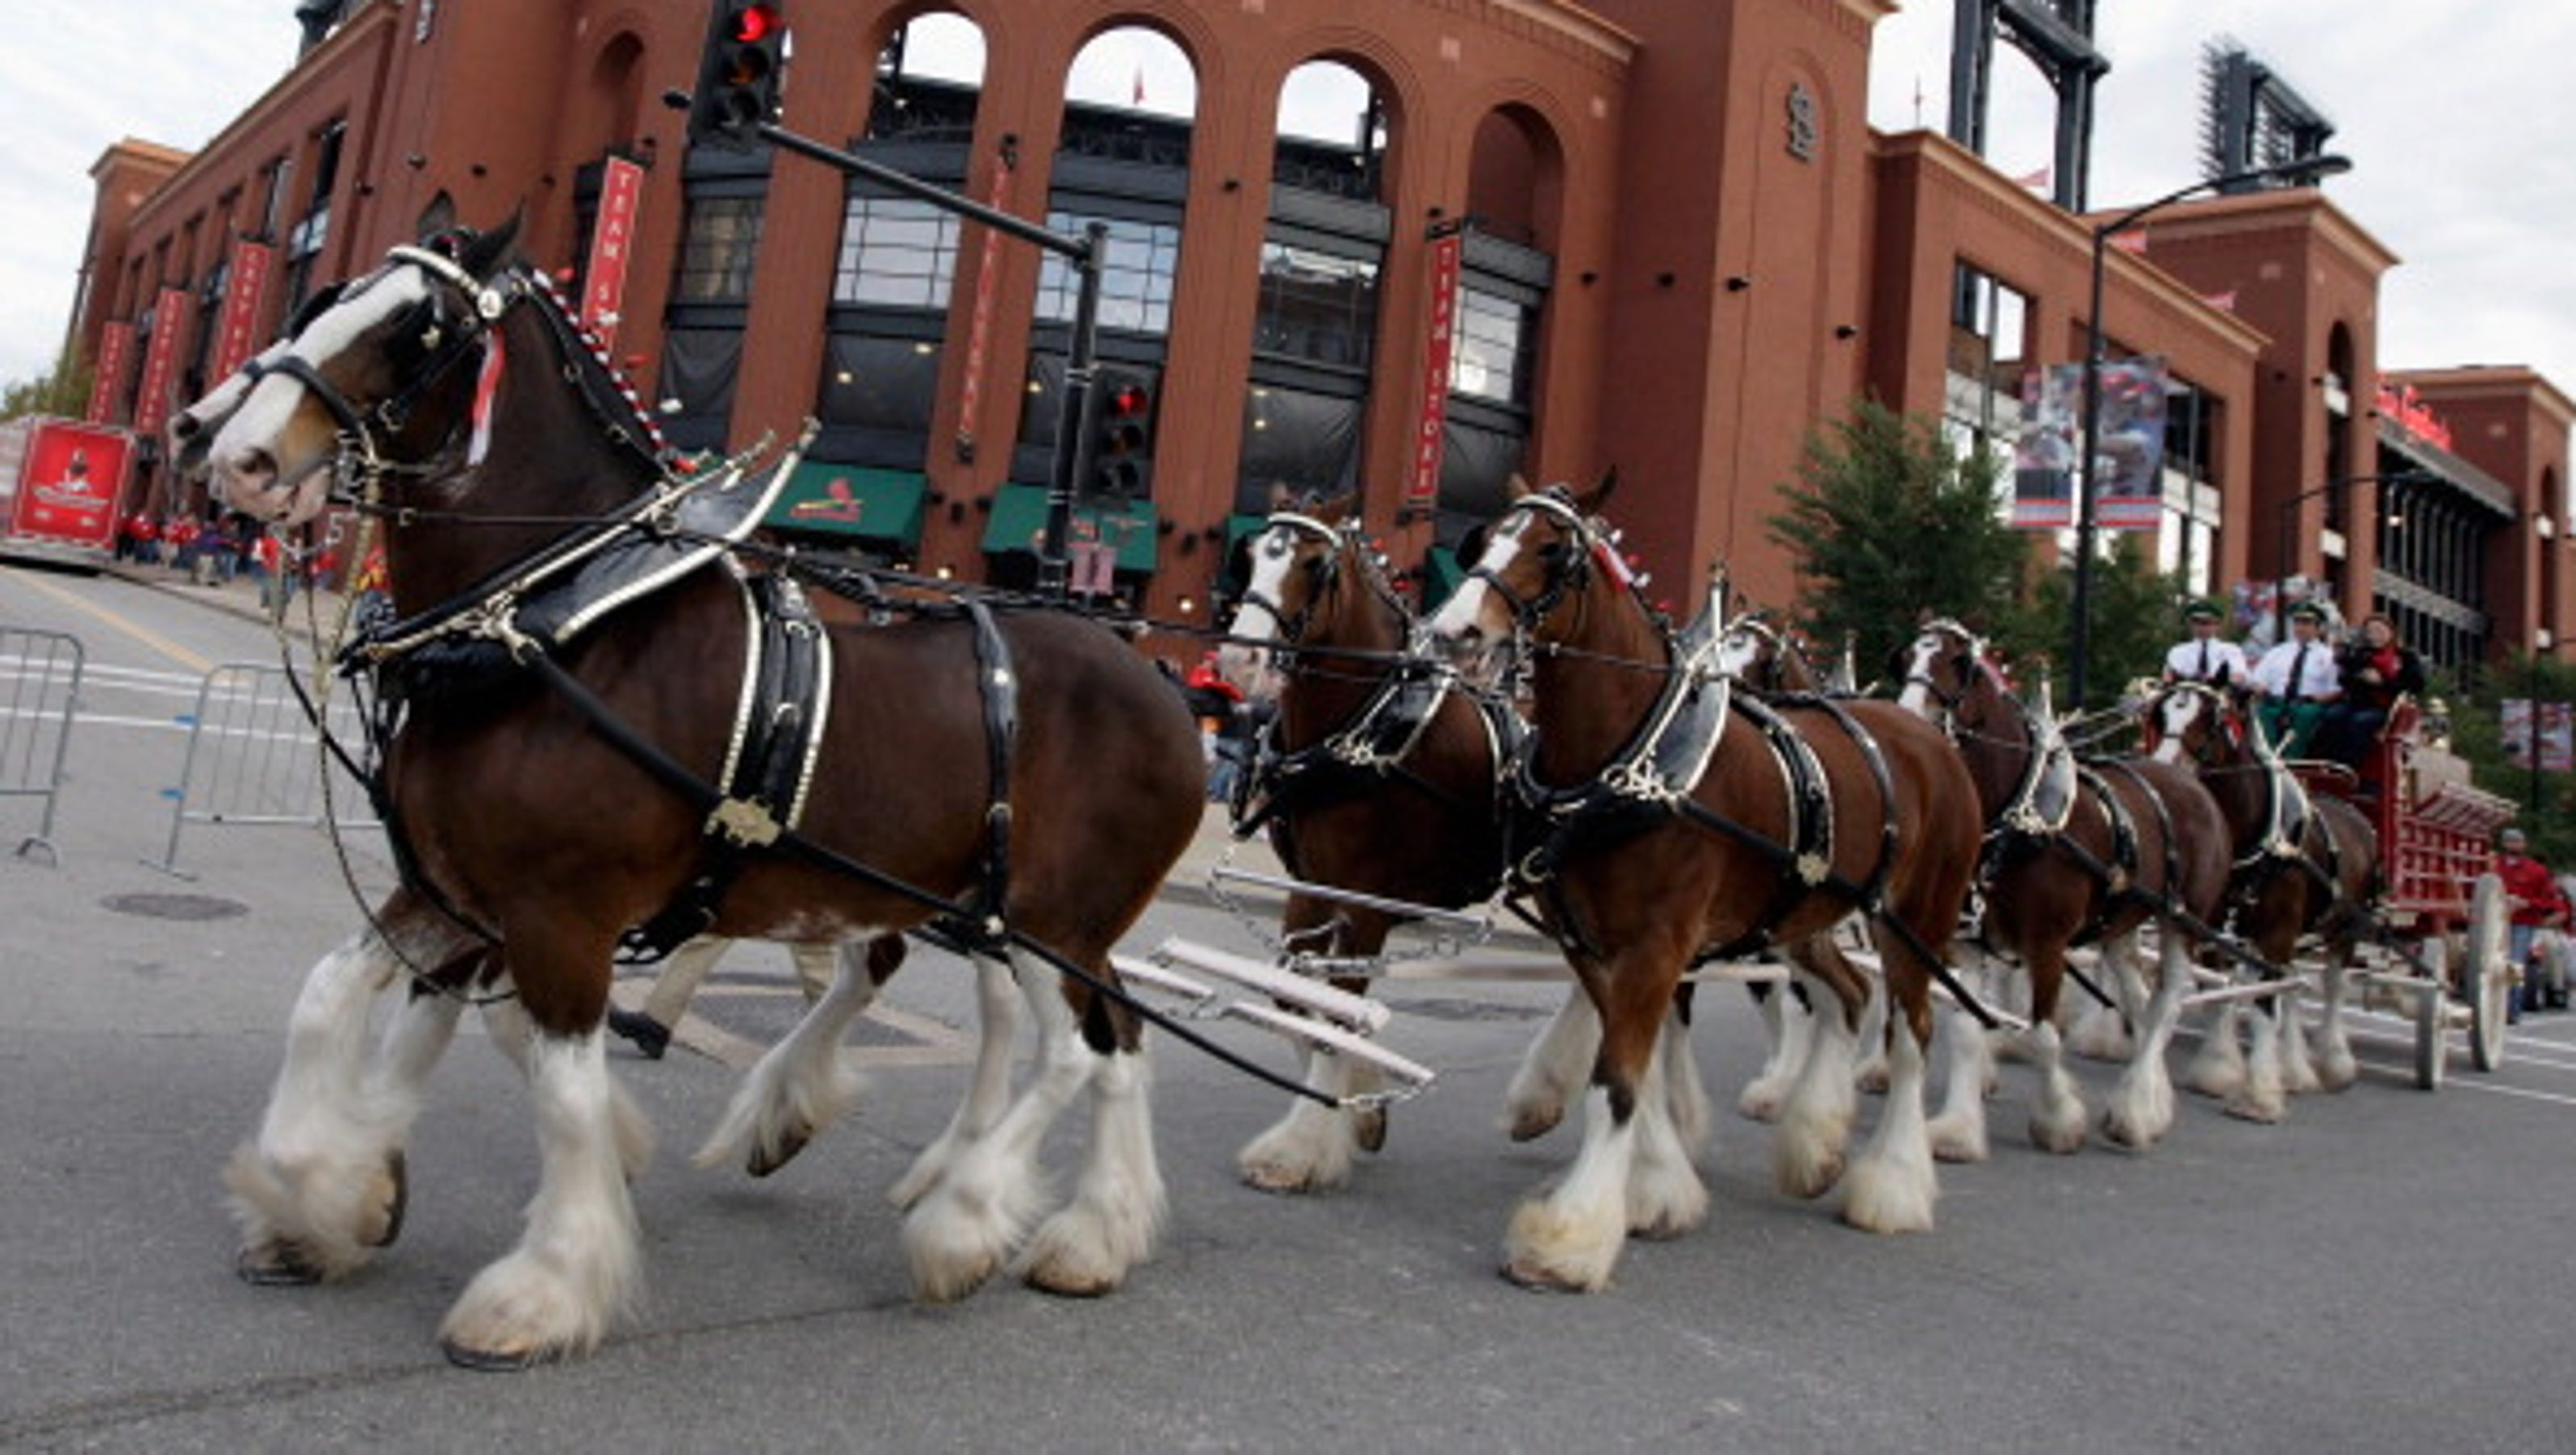 Clydesdale Horses in Snow Budweiser Clydesdales in SnowBudweiser Clydesdales In Snow